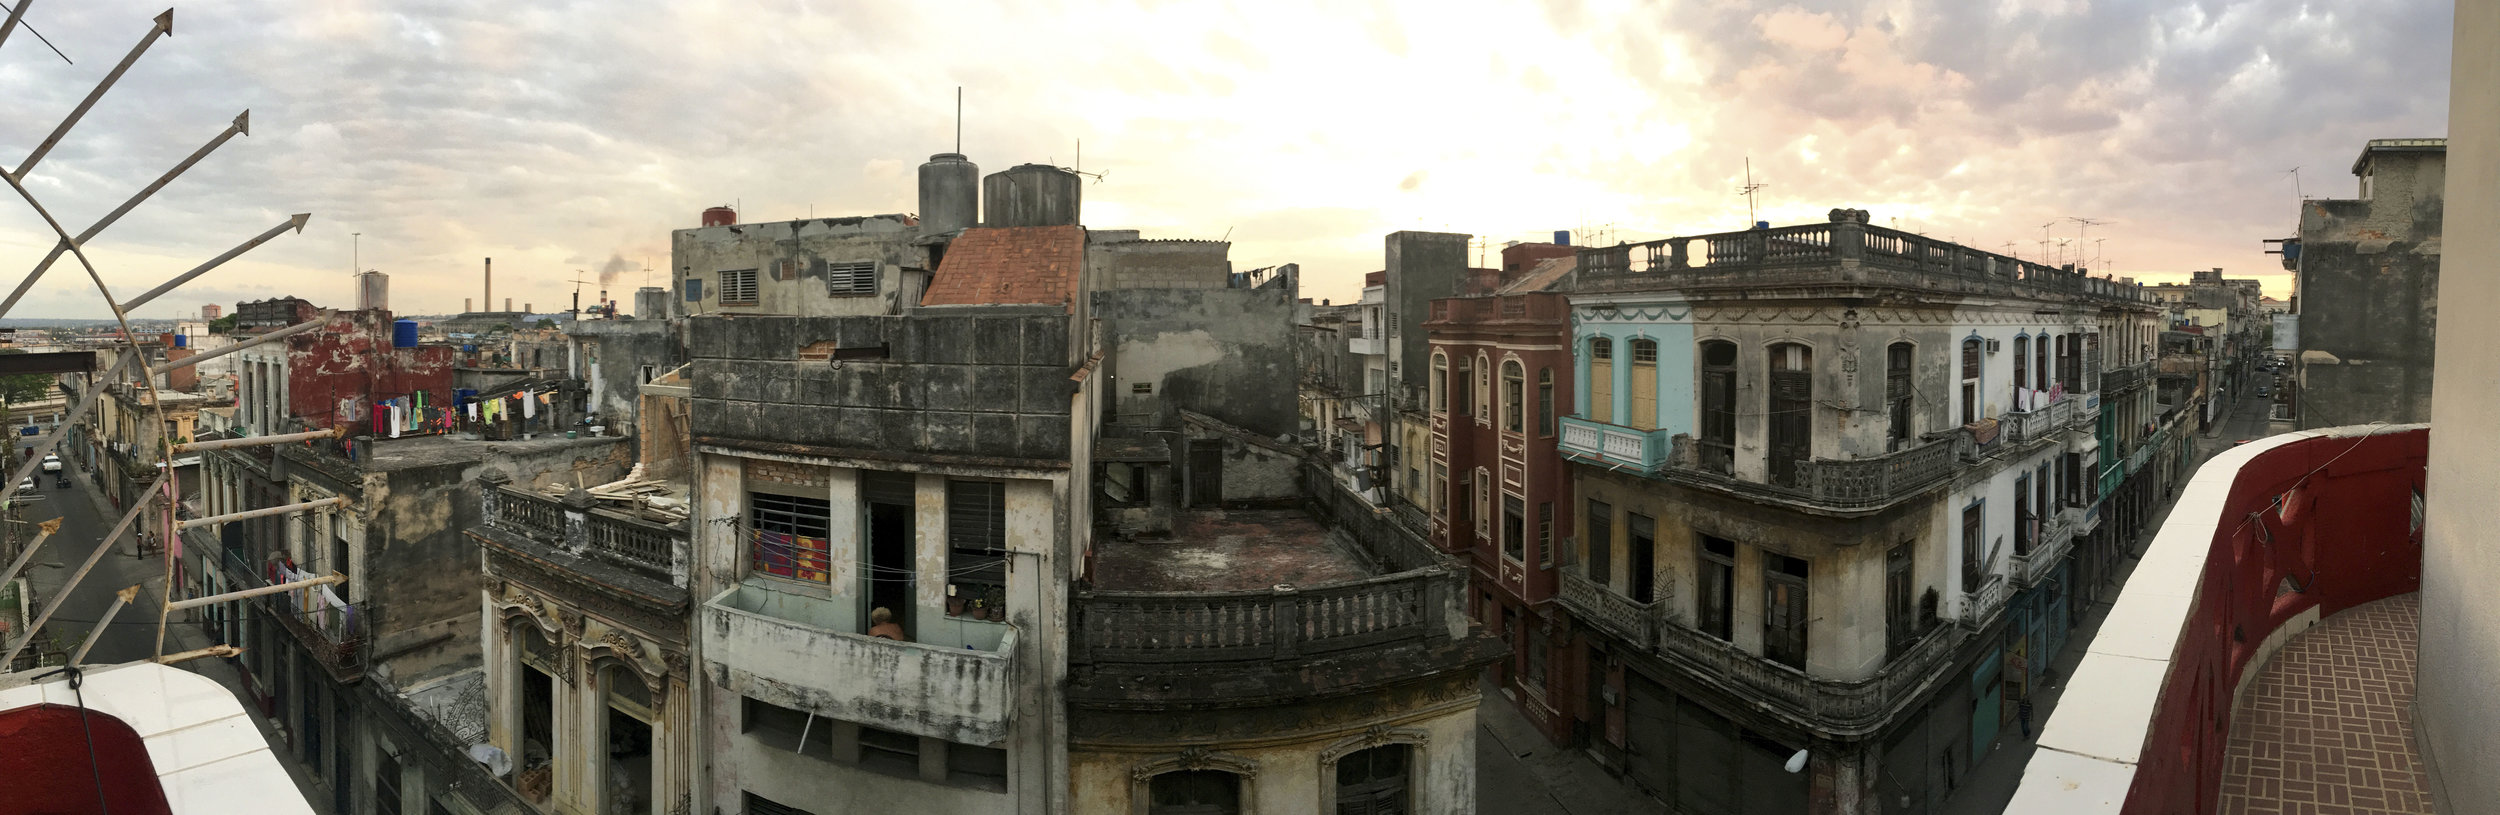 Cuba- Havana- Balcony view from Air BnB